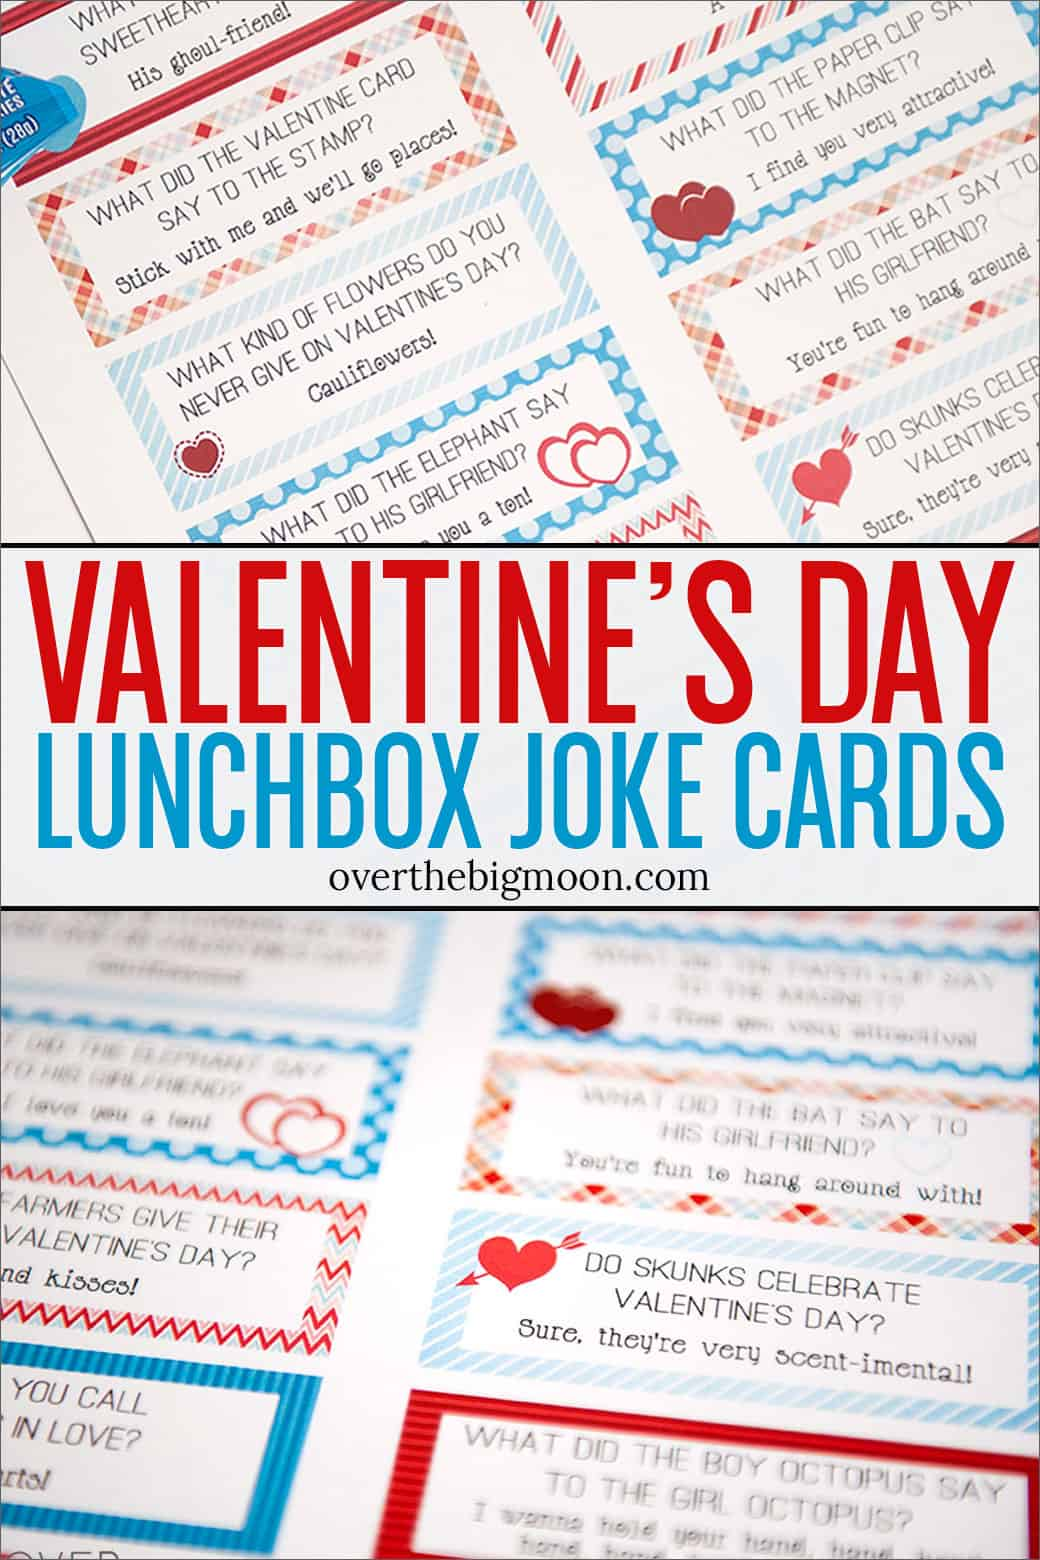 These Free Printable Valentines Lunch Box Joke Cards are a fun way to celebrate the holiday all month long!From overthebigmoon.com!